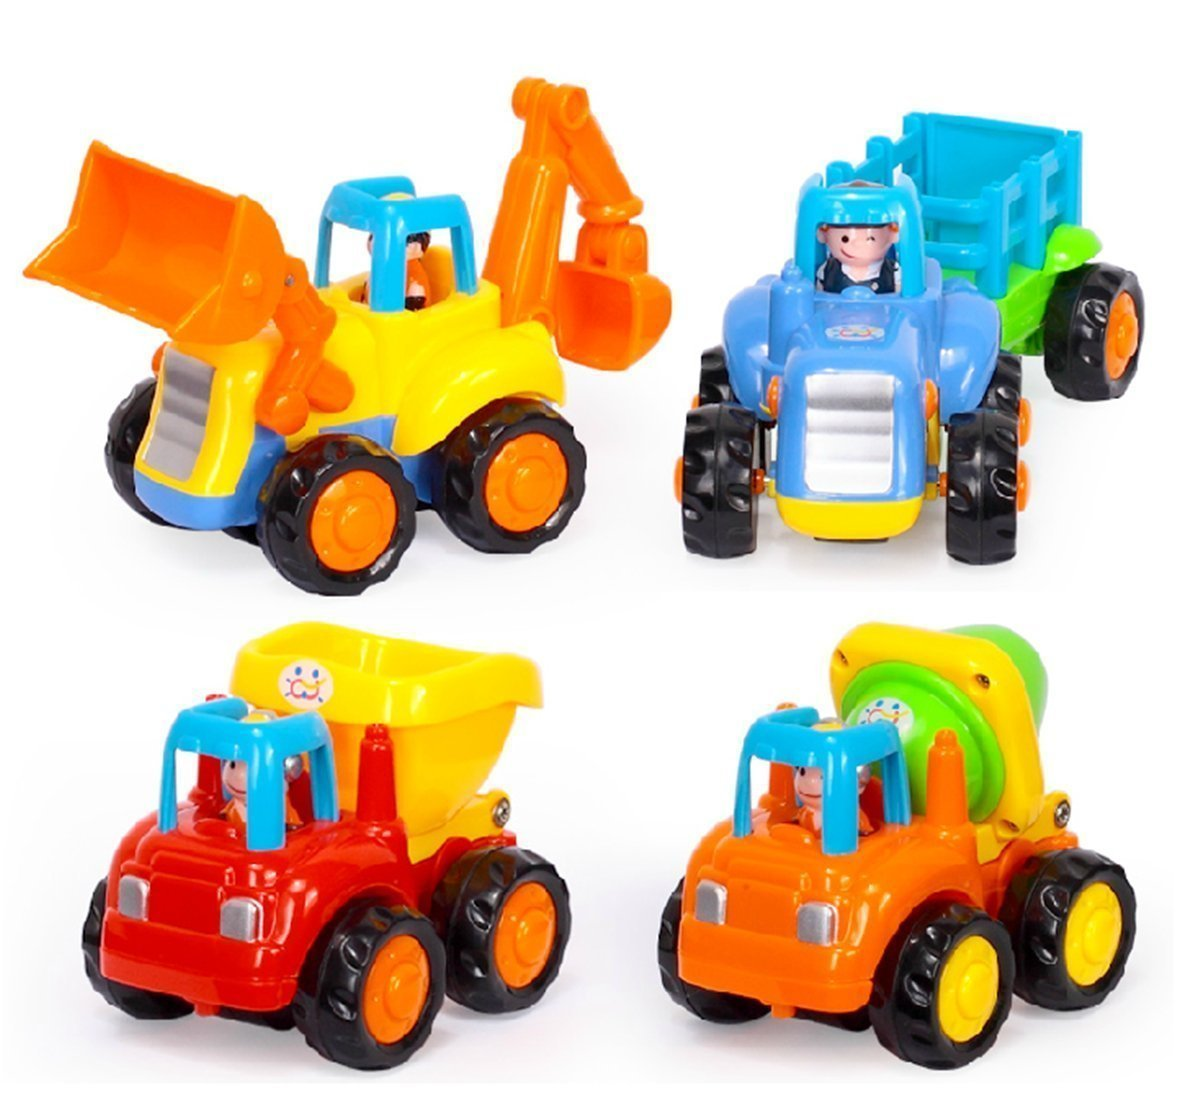 Berry President Set of 4 Early Educational Push and Go Friction Powered Car Tractor Bulldozer Mixer Truck and Dumper Toys for Toddler Baby Children Kids Boys Girls